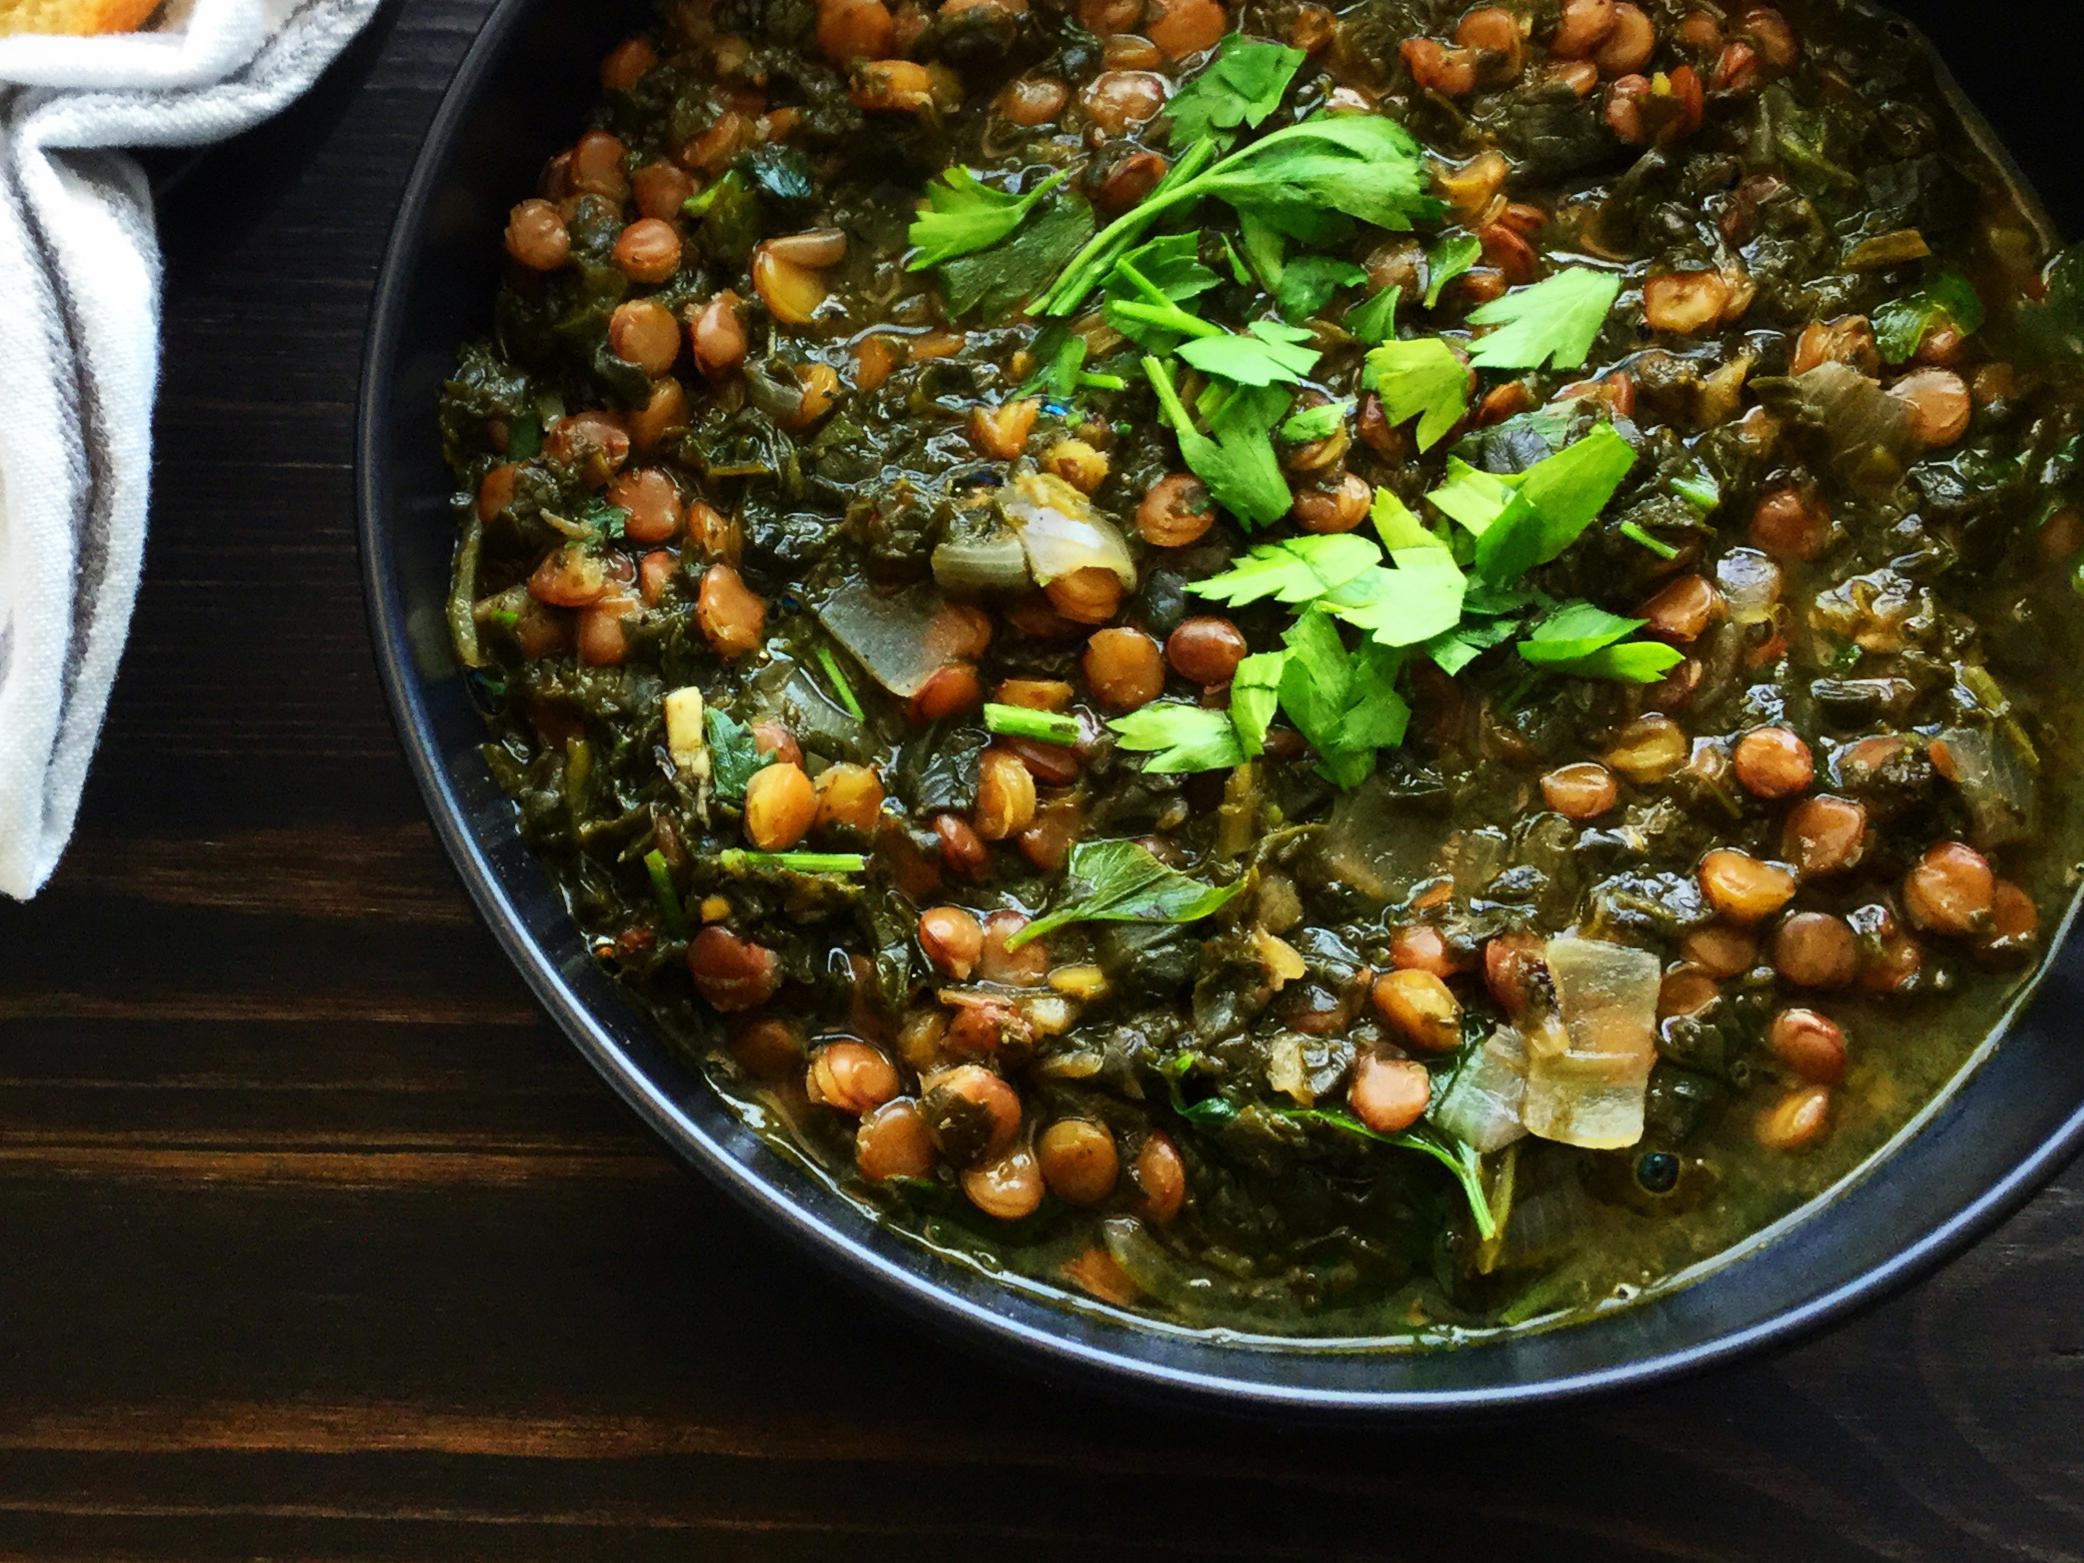 french green lentil stew with blanched greens | Functional Nutrition Alliance